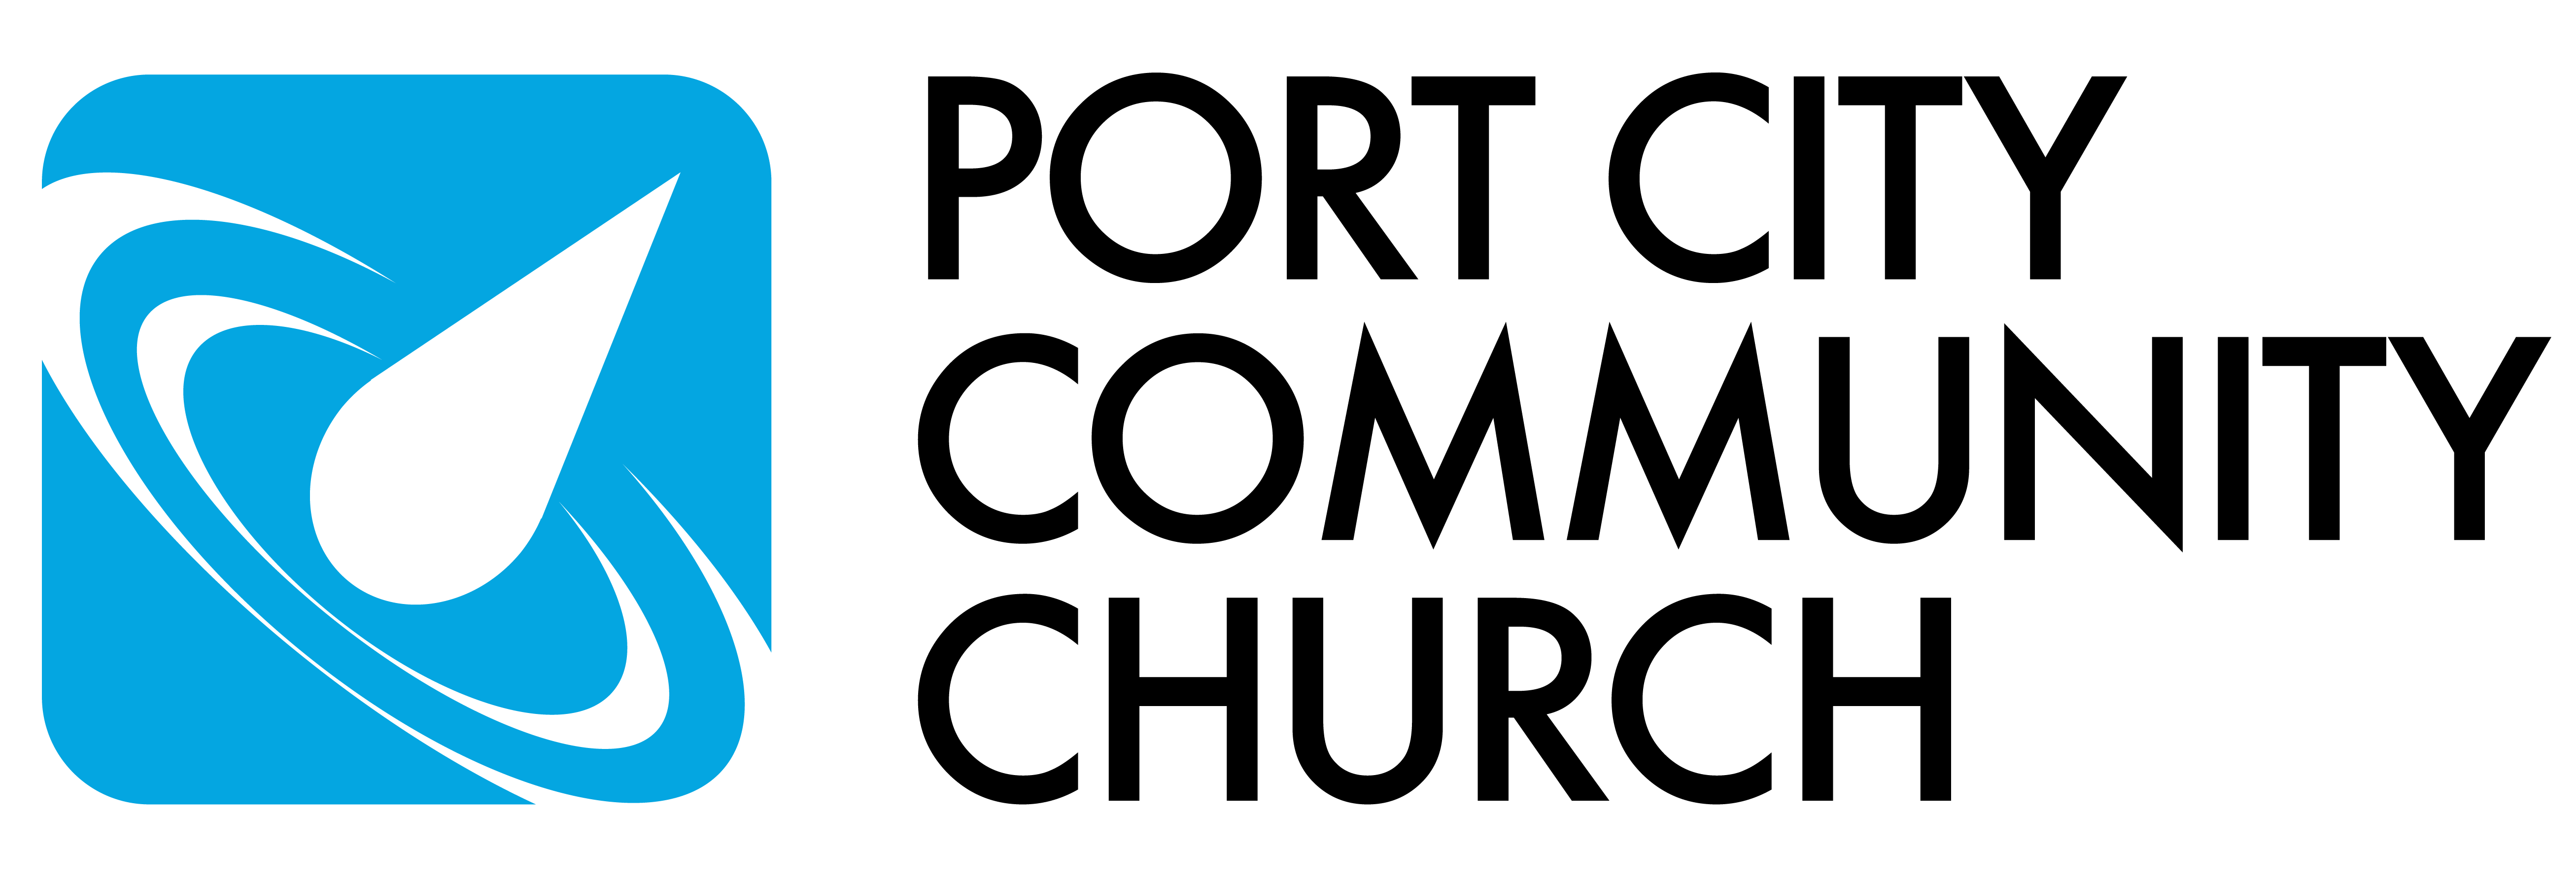 Welcome to our church png. Port city community pc